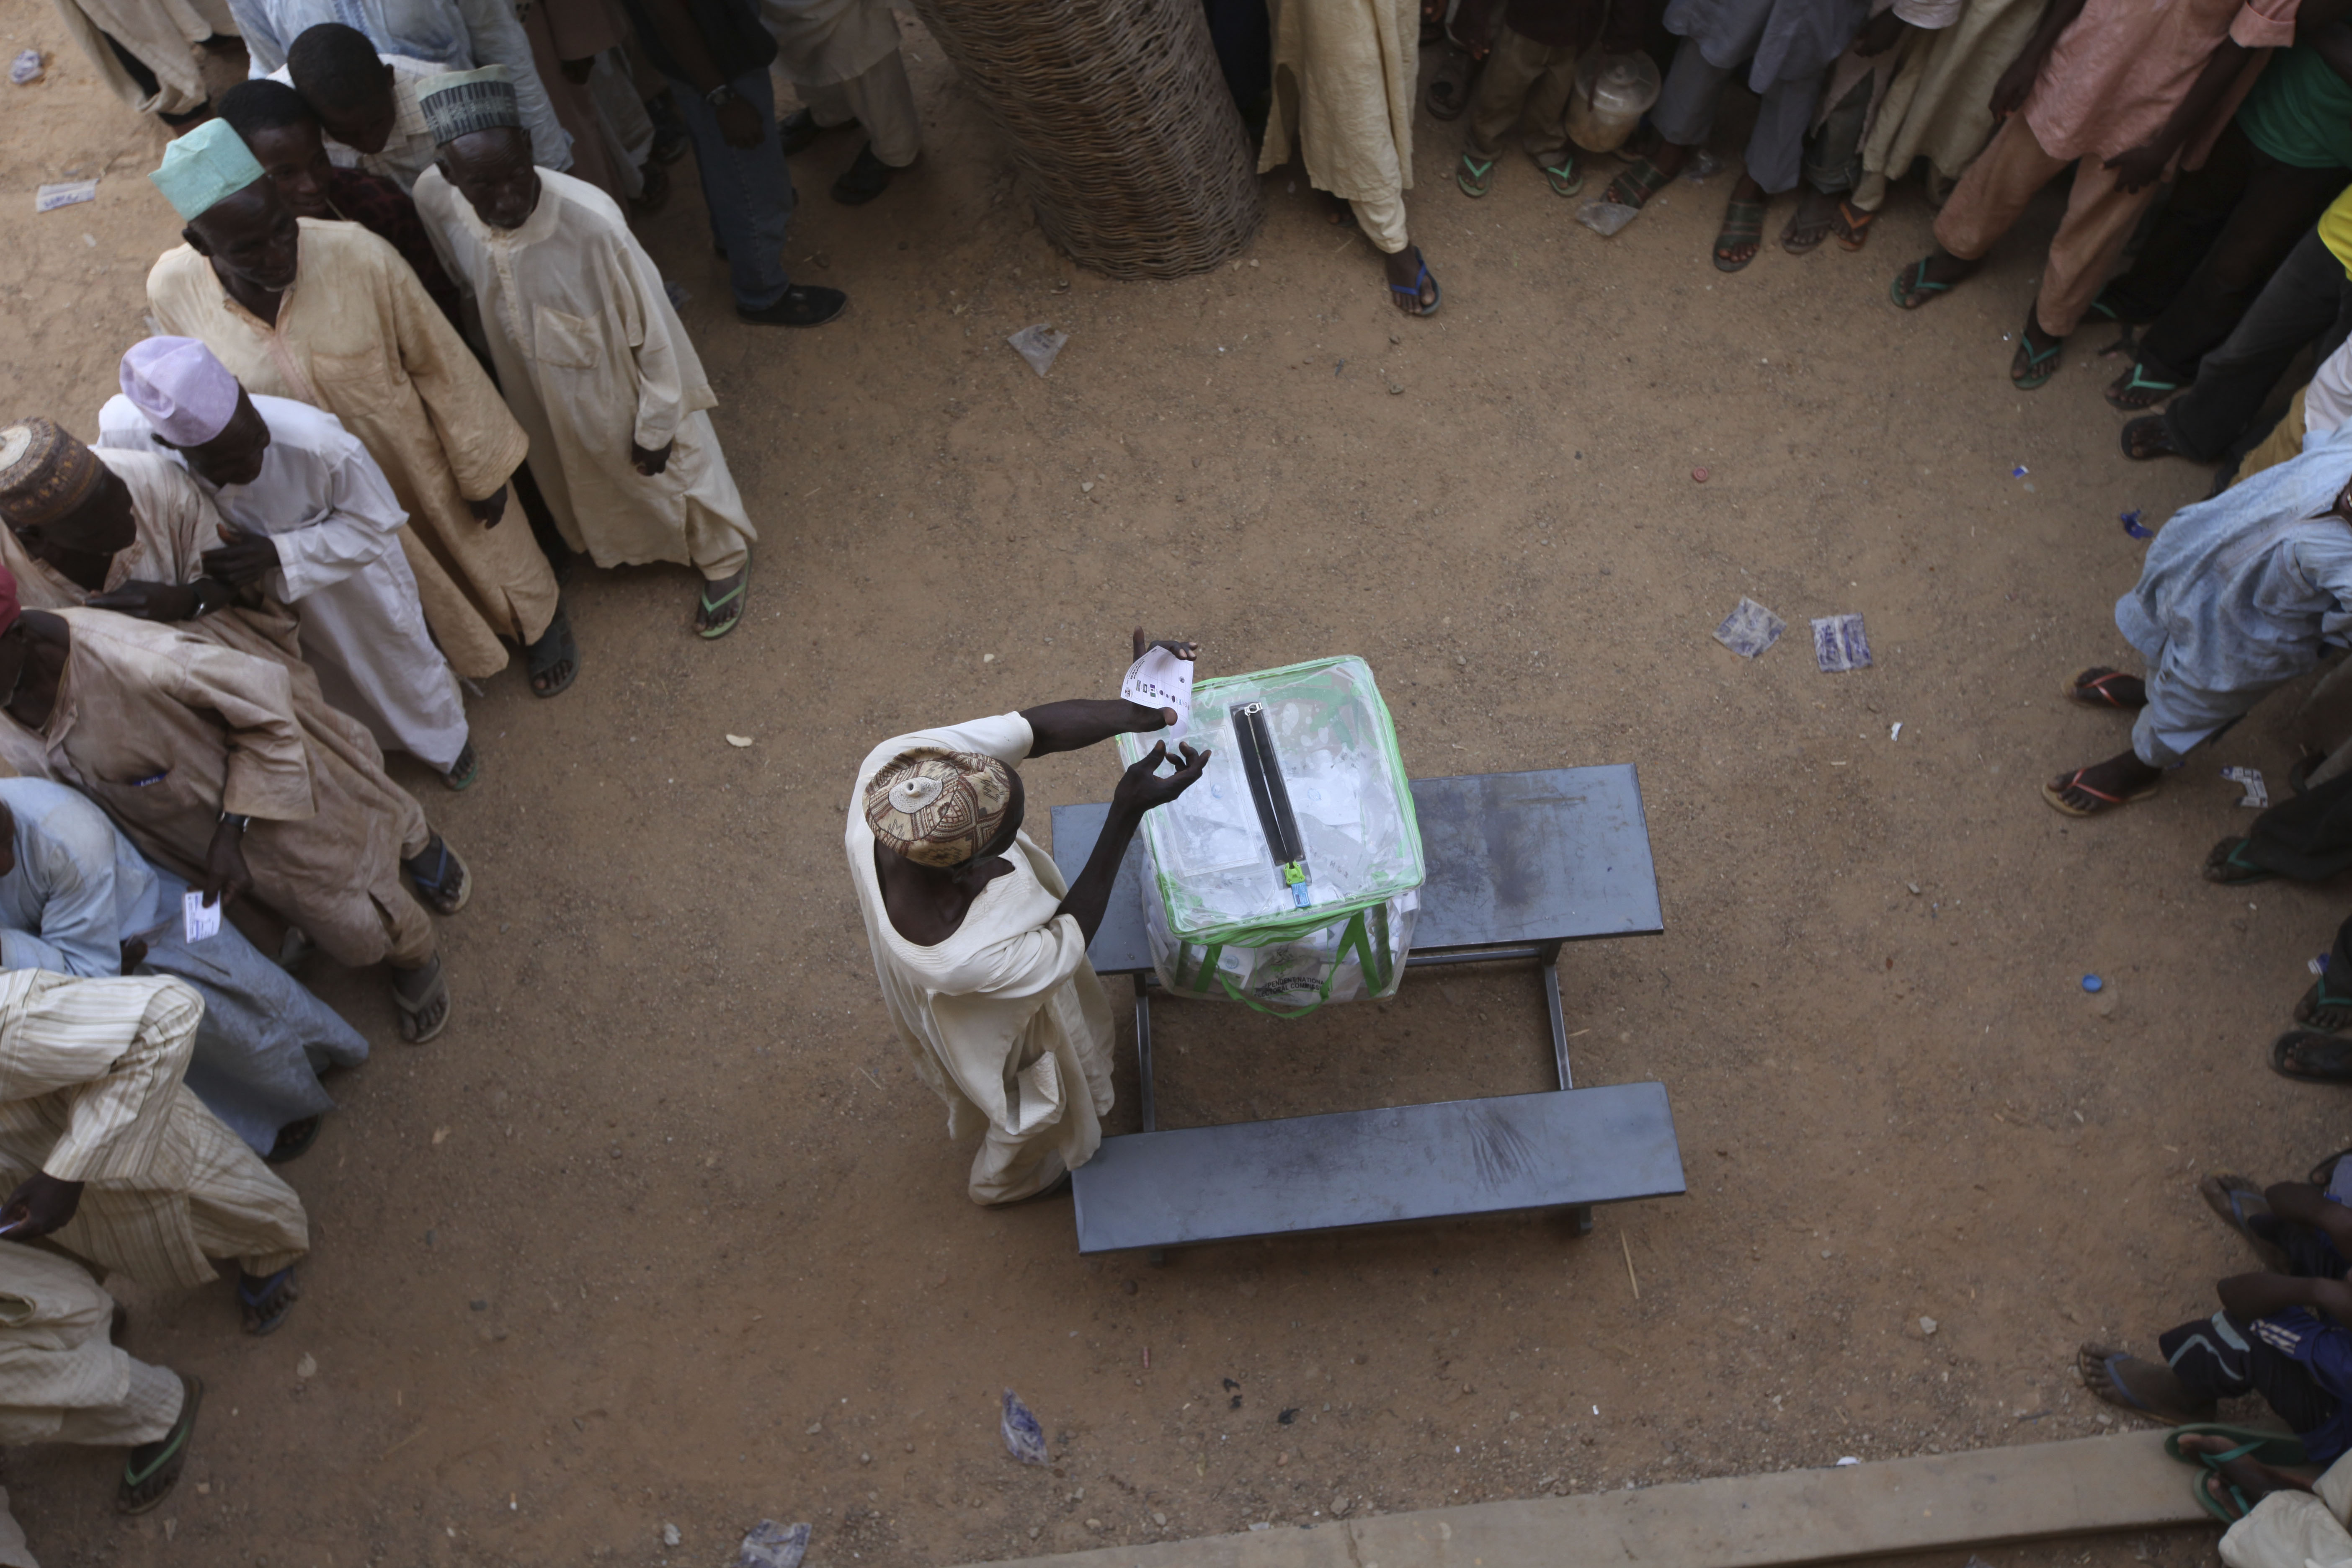 A man cast his vote during the presidential elections in Mashi, Nigeria, Saturday, April 16, 2011. Voters in Africa's most populous nation cast ballots Saturday in a presidential poll that was largely peaceful, though there was reports of irregularities and fraud. (AP Photo/Sunday Alamba)